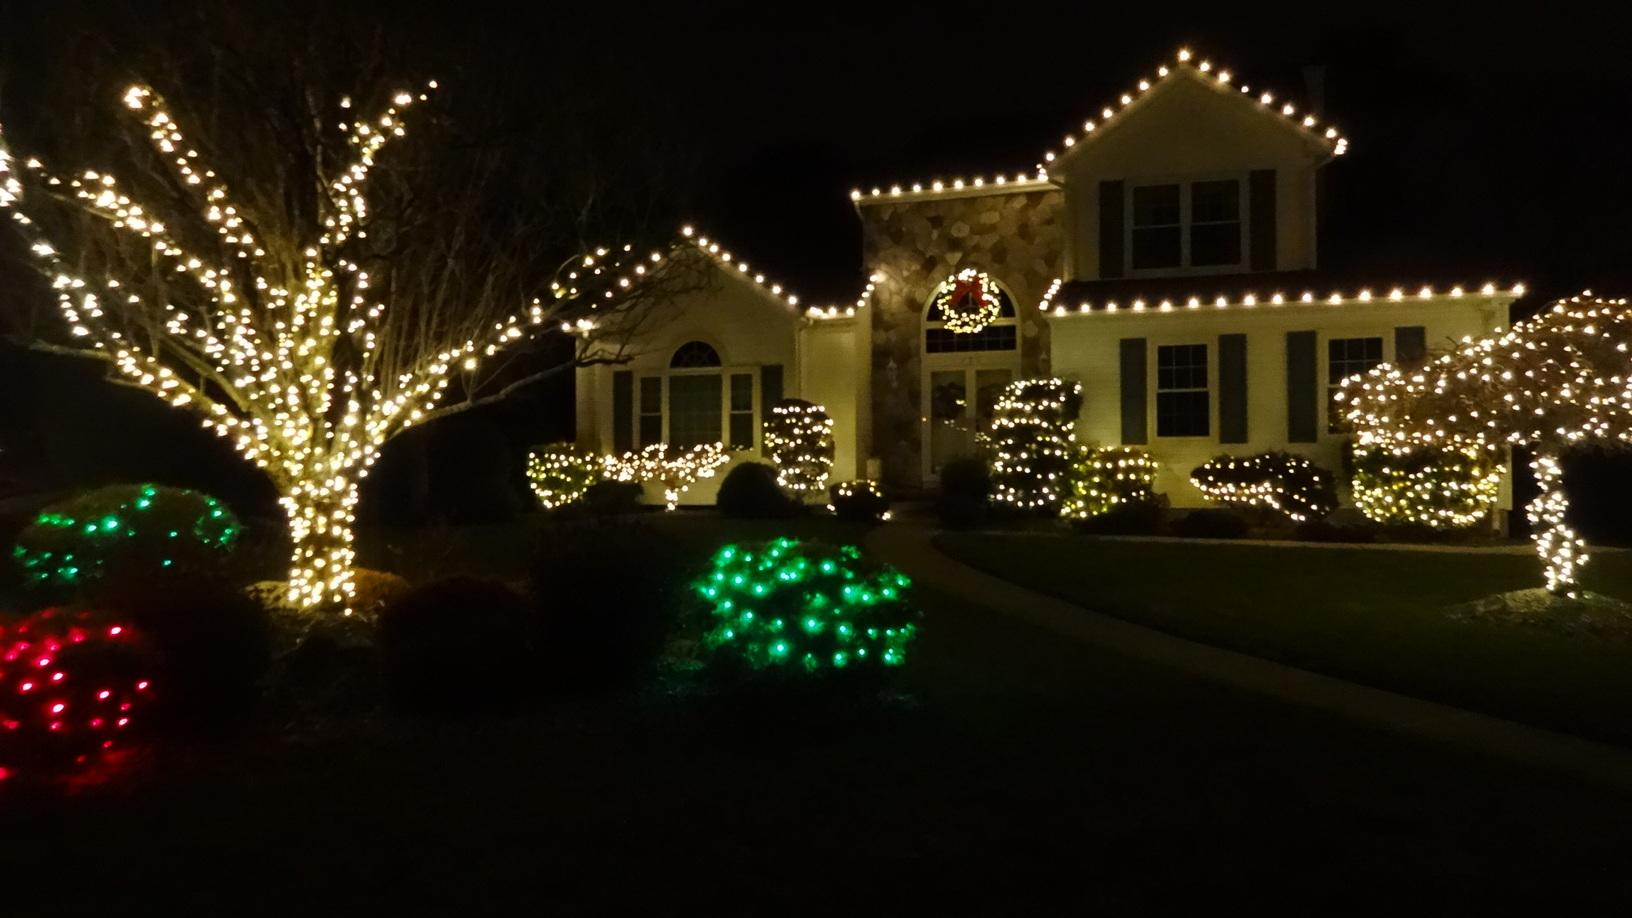 Christmas Lights on home in Brick, NJ - After Photo